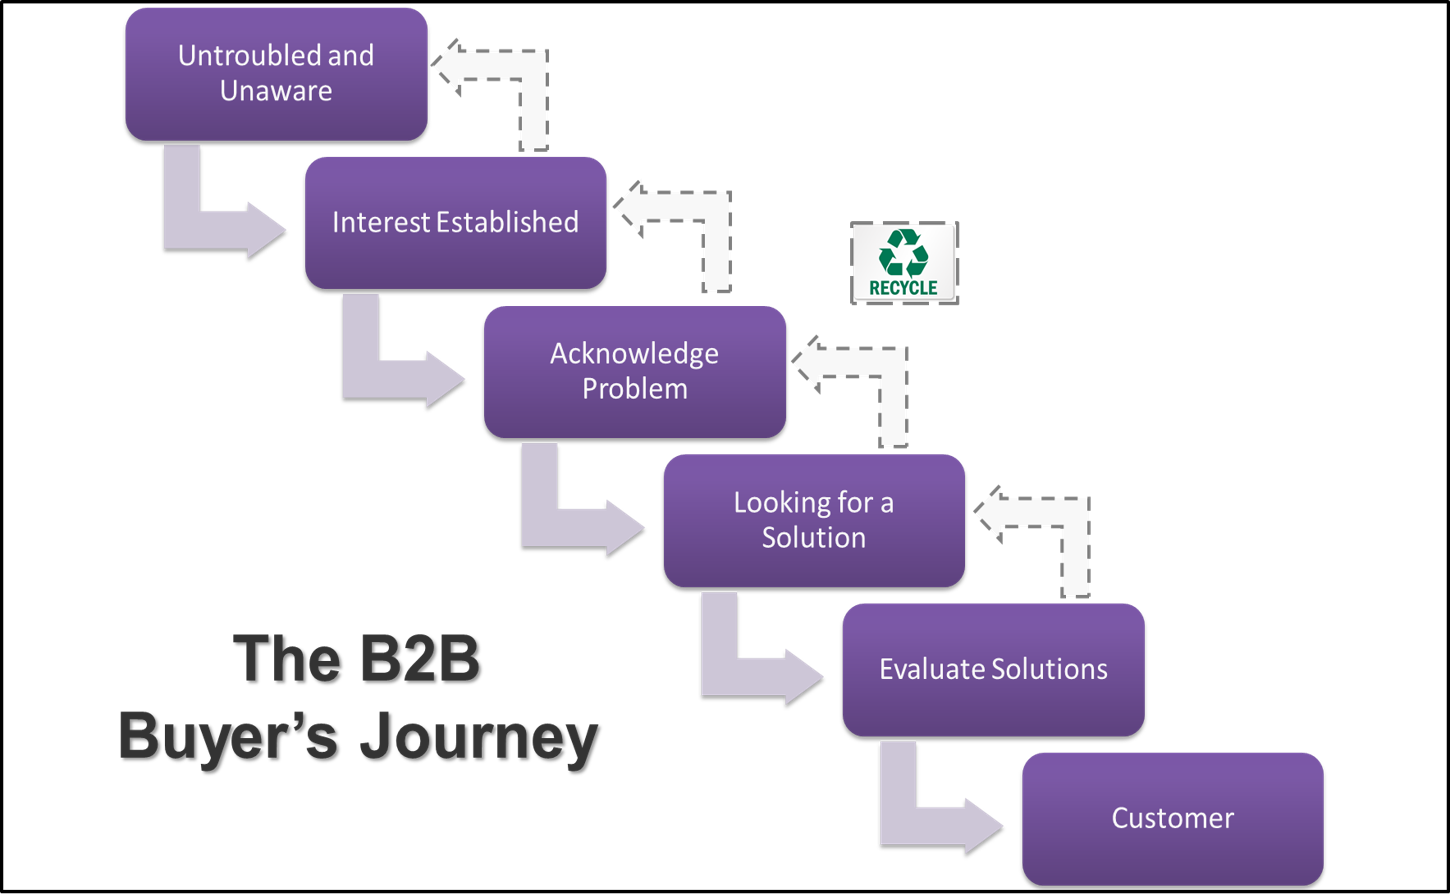 B2B Buyers Journey Graphic 16 2